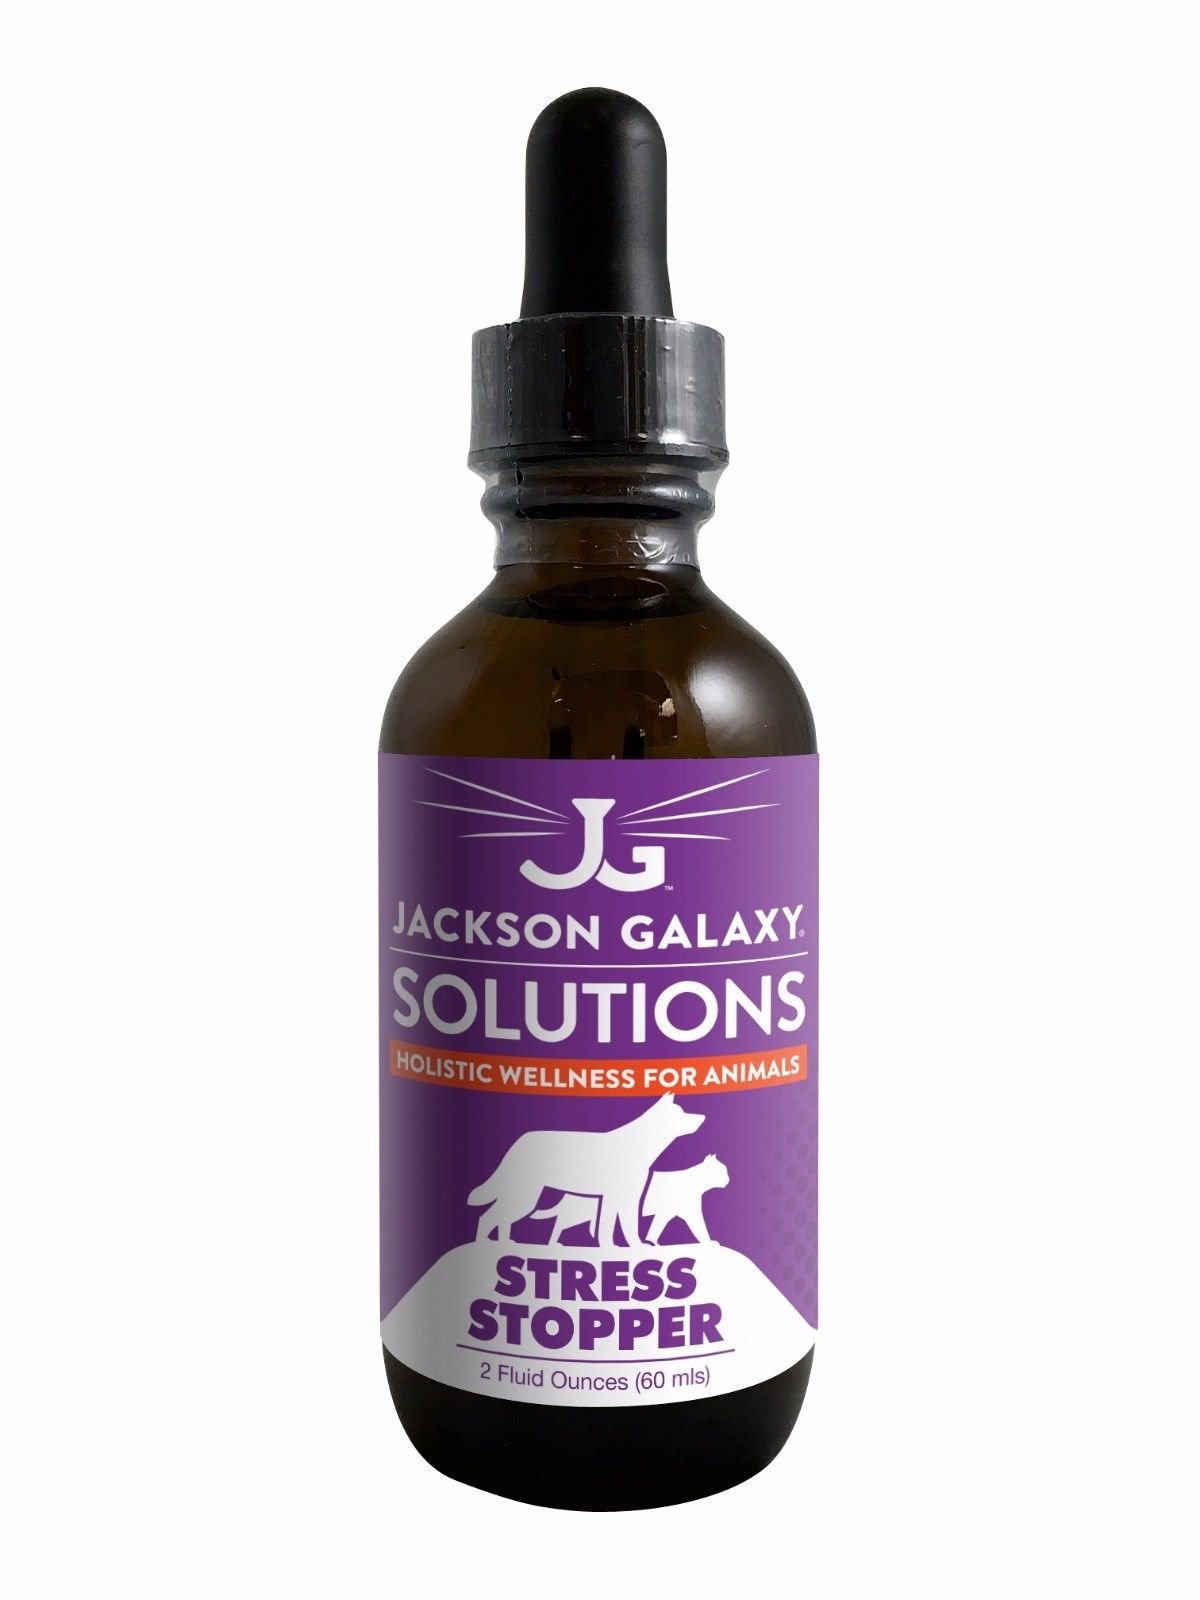 Jackson Galaxy Solutions Stress Stopper